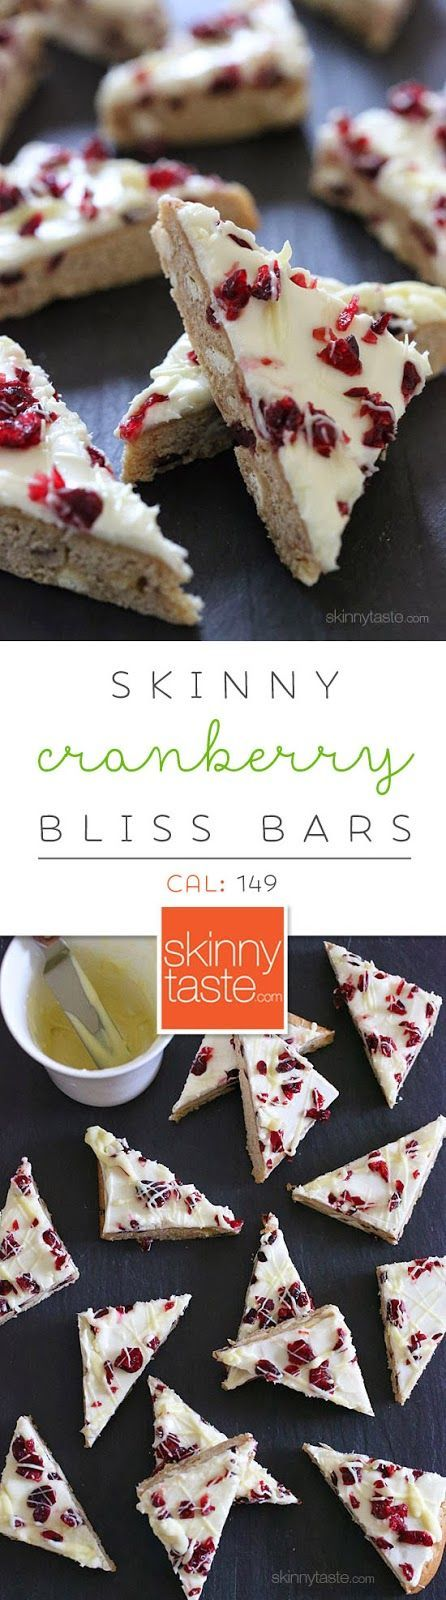 Skinny Cranberry Bliss Bars – SO GOOD, a copycat of Starbucks bars with a fraction of the calories! from @skinnytaste